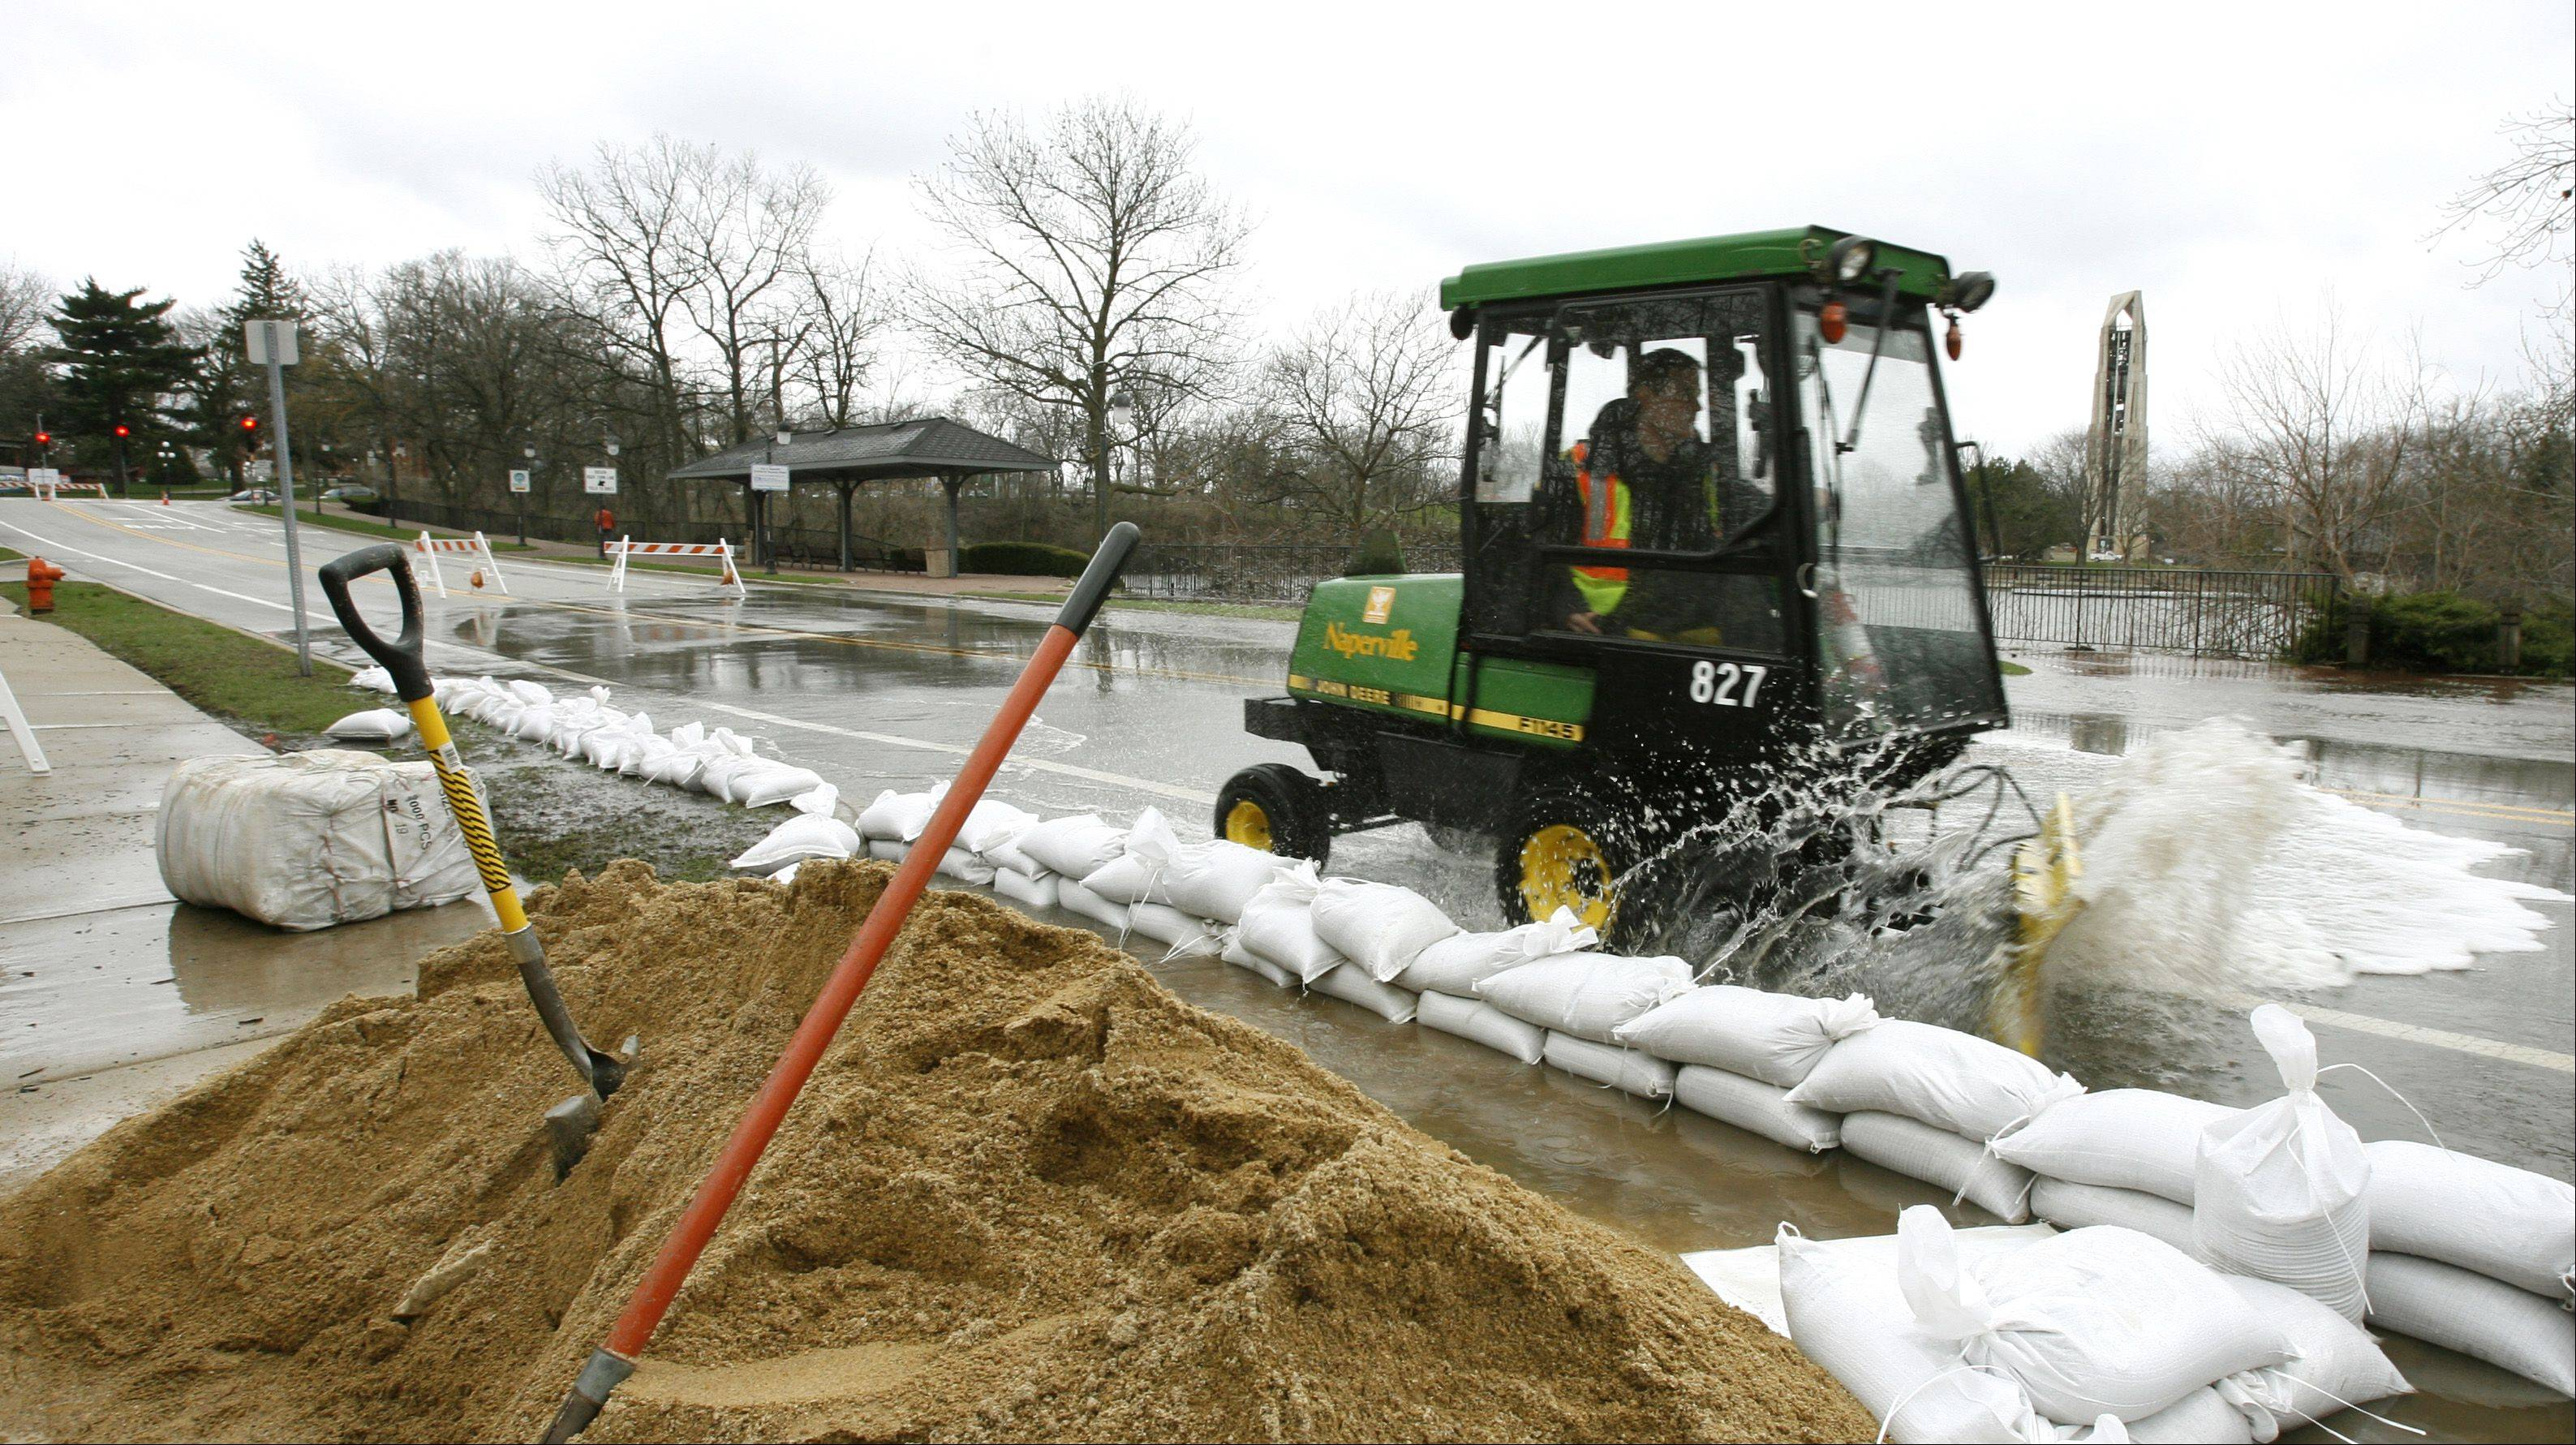 Sandbagging helped mitigate the flooding in downtown Naperville.